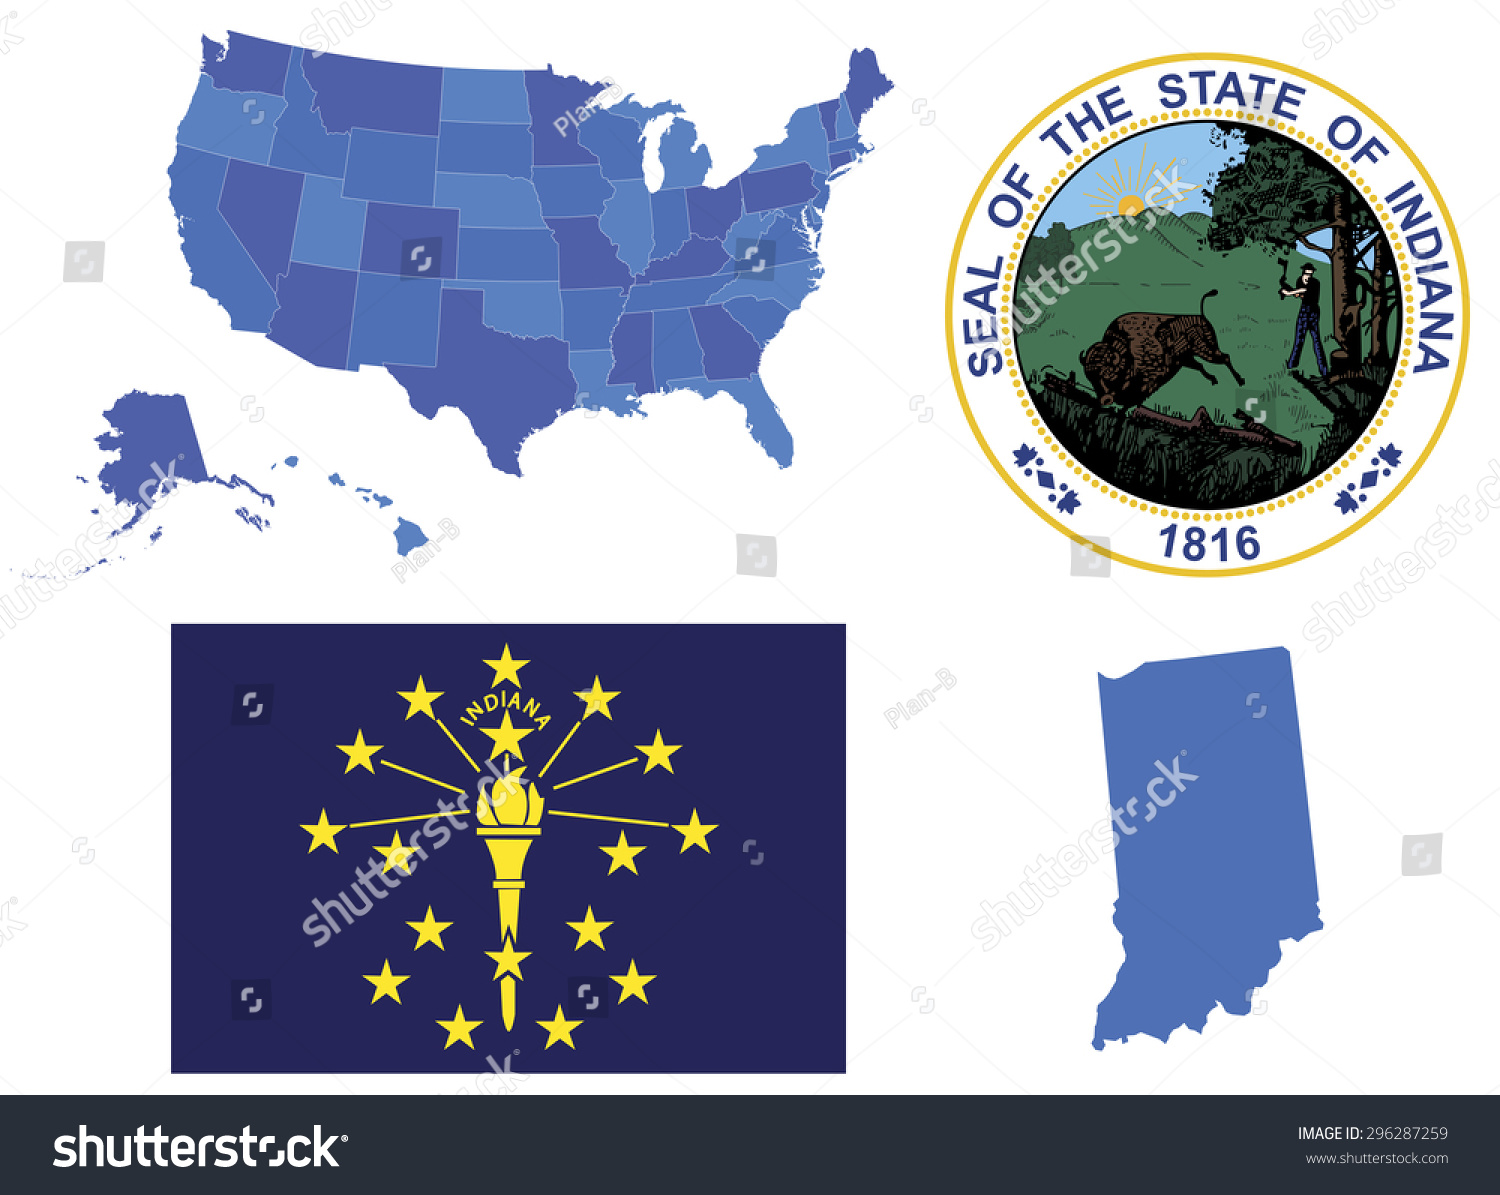 Vector Illustration Indiana State Contains High Stock Vector - Map of usa indiana